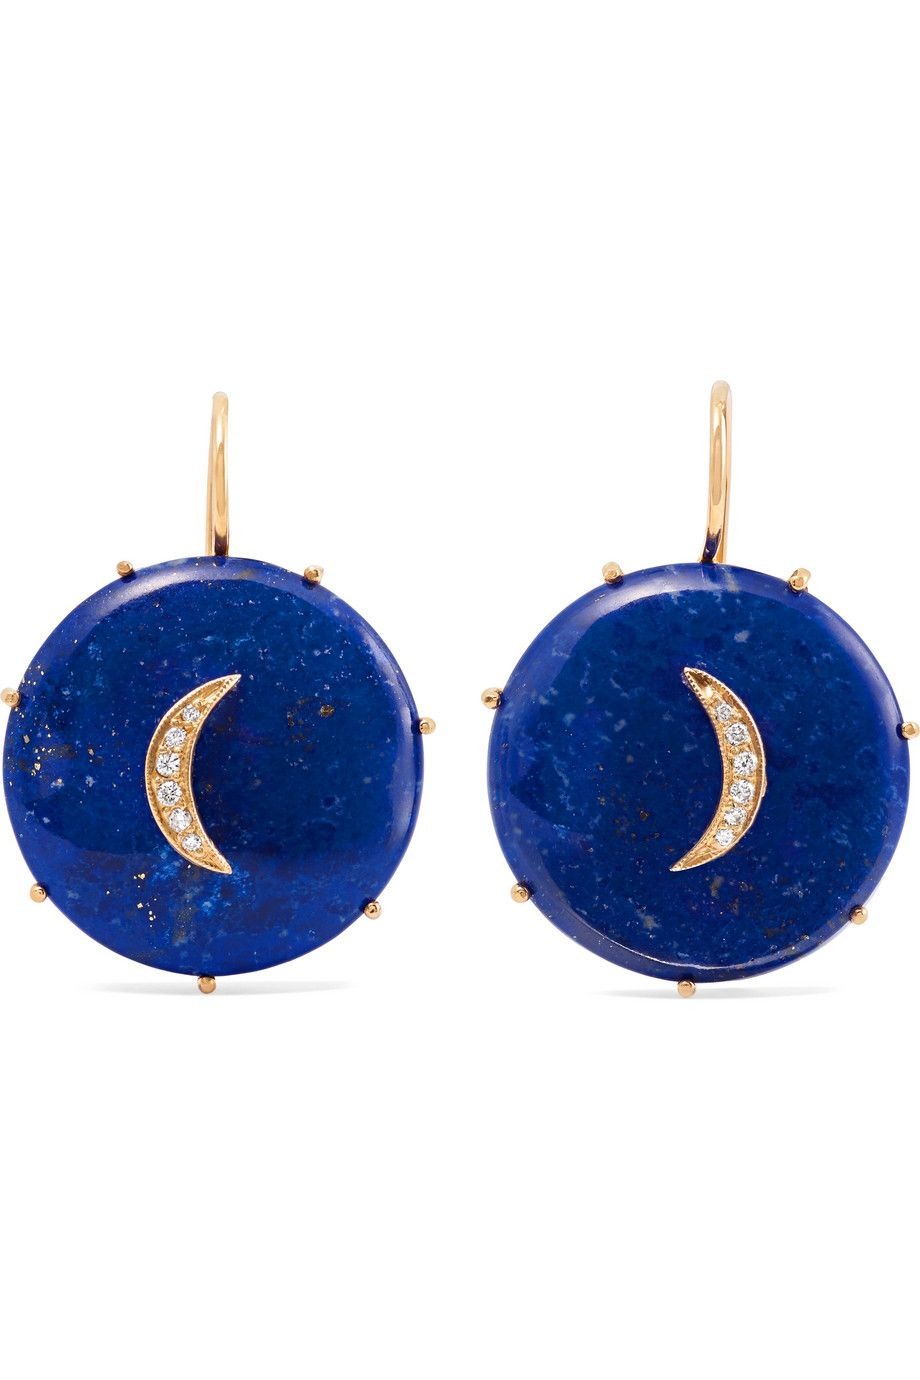 Crescent Moon Gold, Lapis Lazuli, and Diamond Earrings